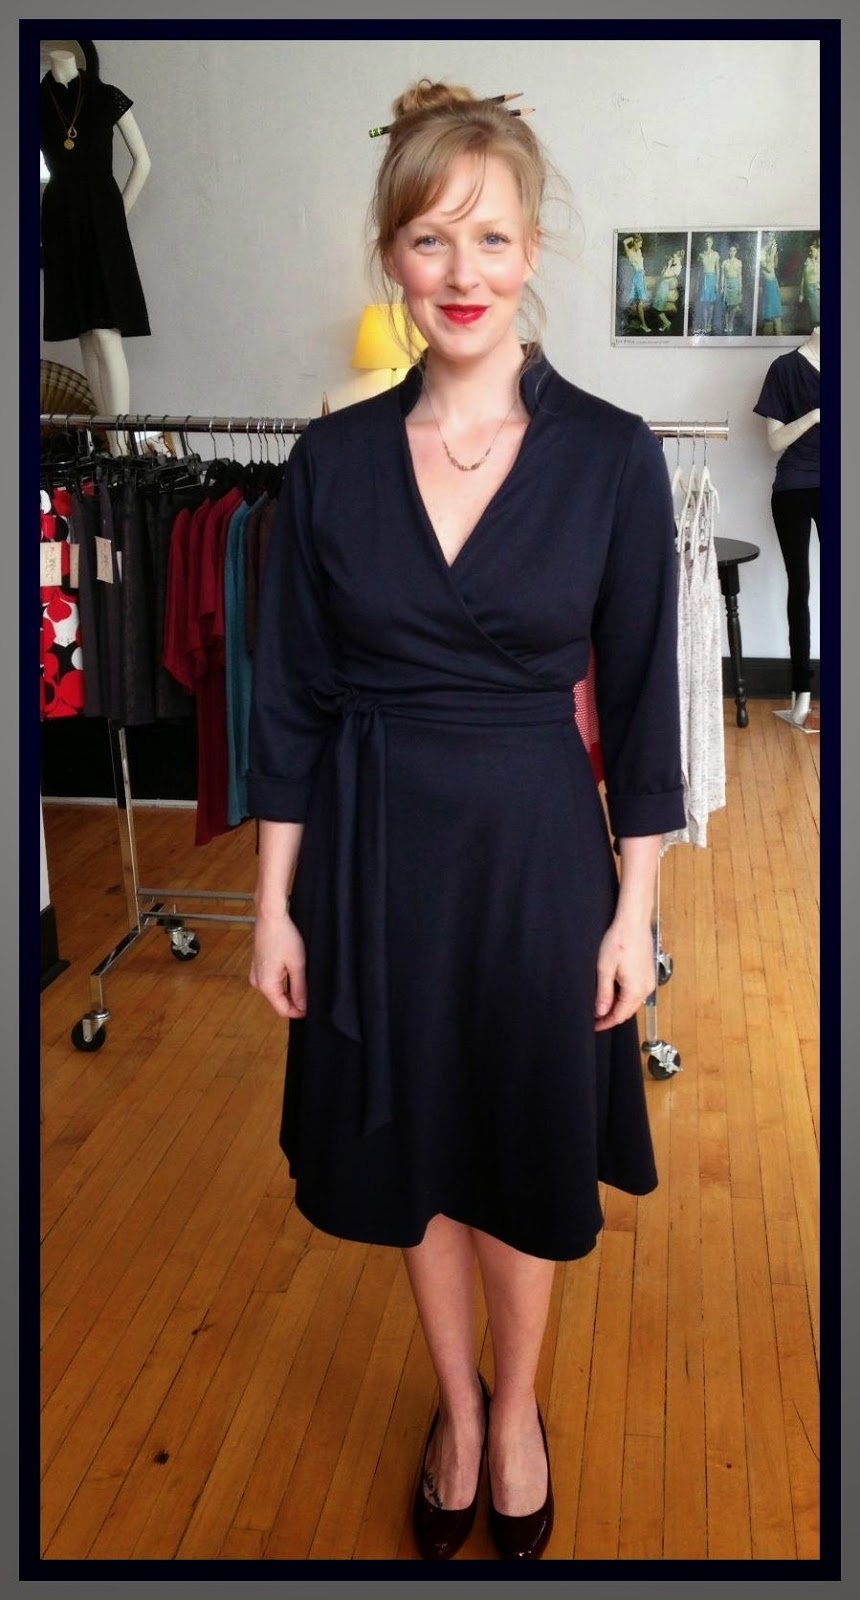 Mona wrap dress by Sarah Bibb and Amy Olson necklace at Folly